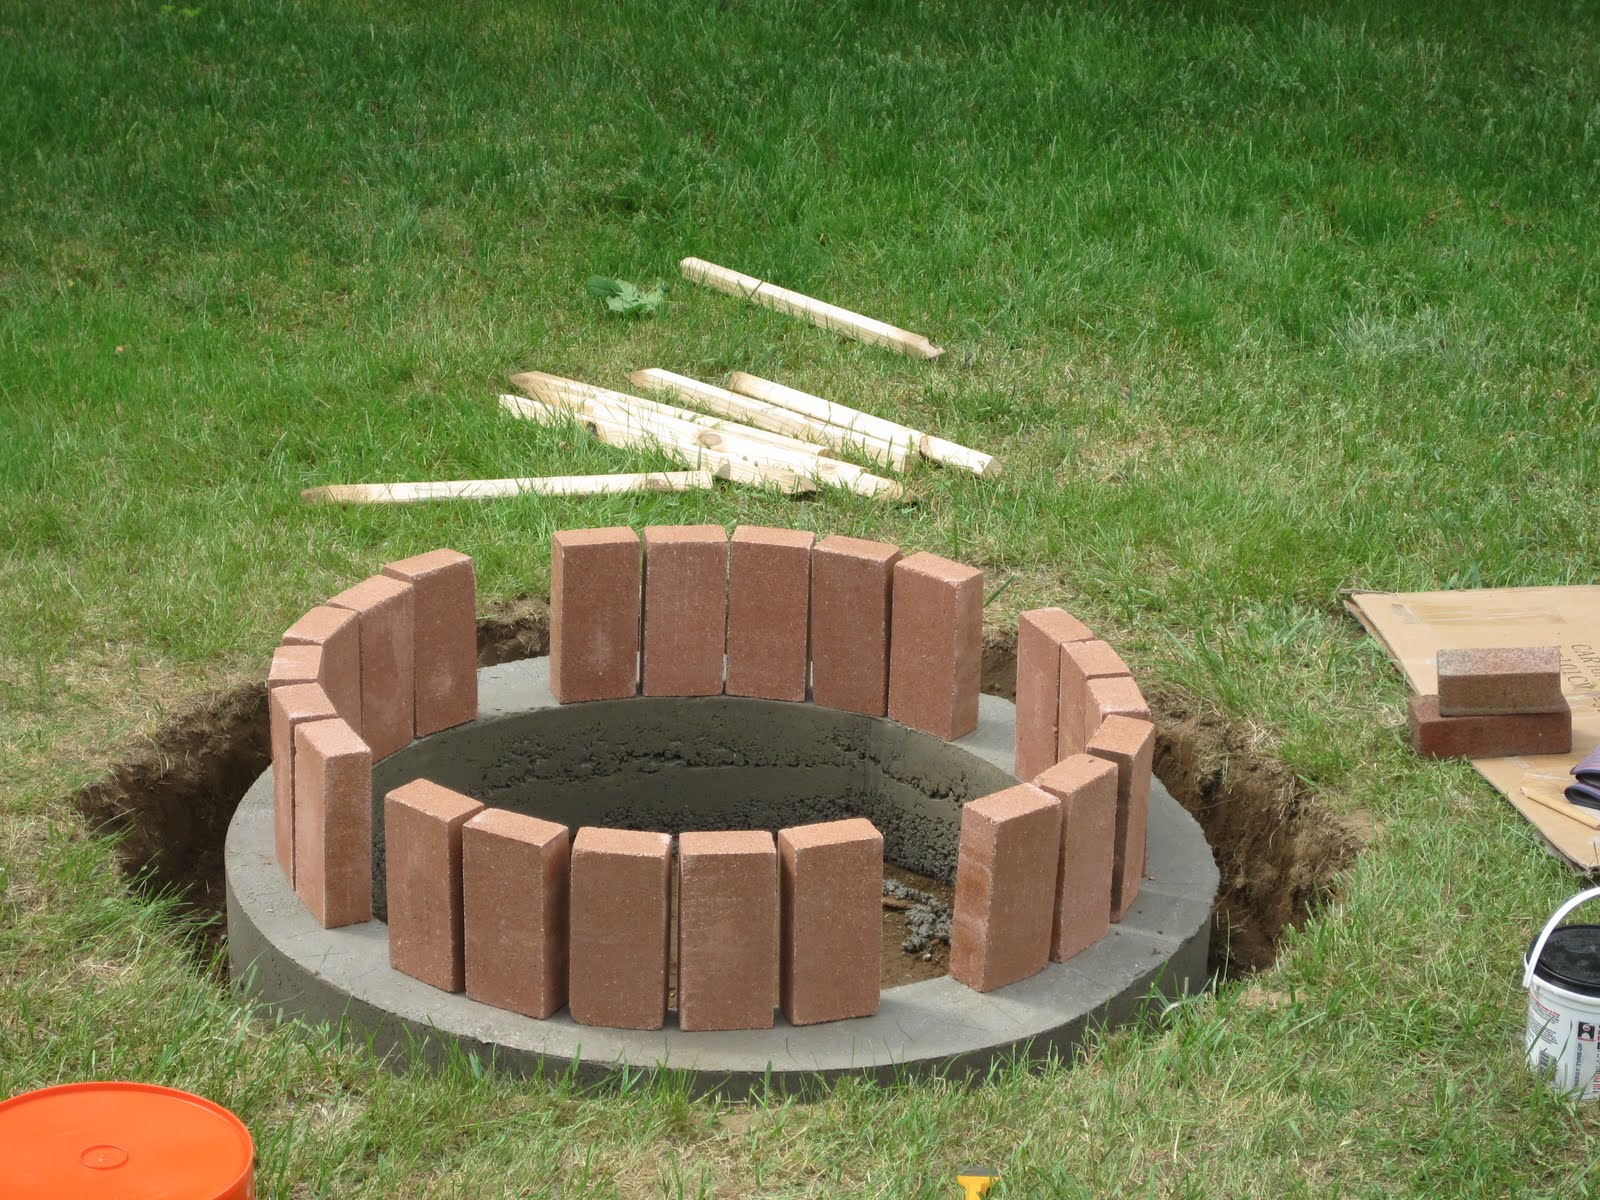 Brick Fire Pit : Jemstaa the fire pit project day